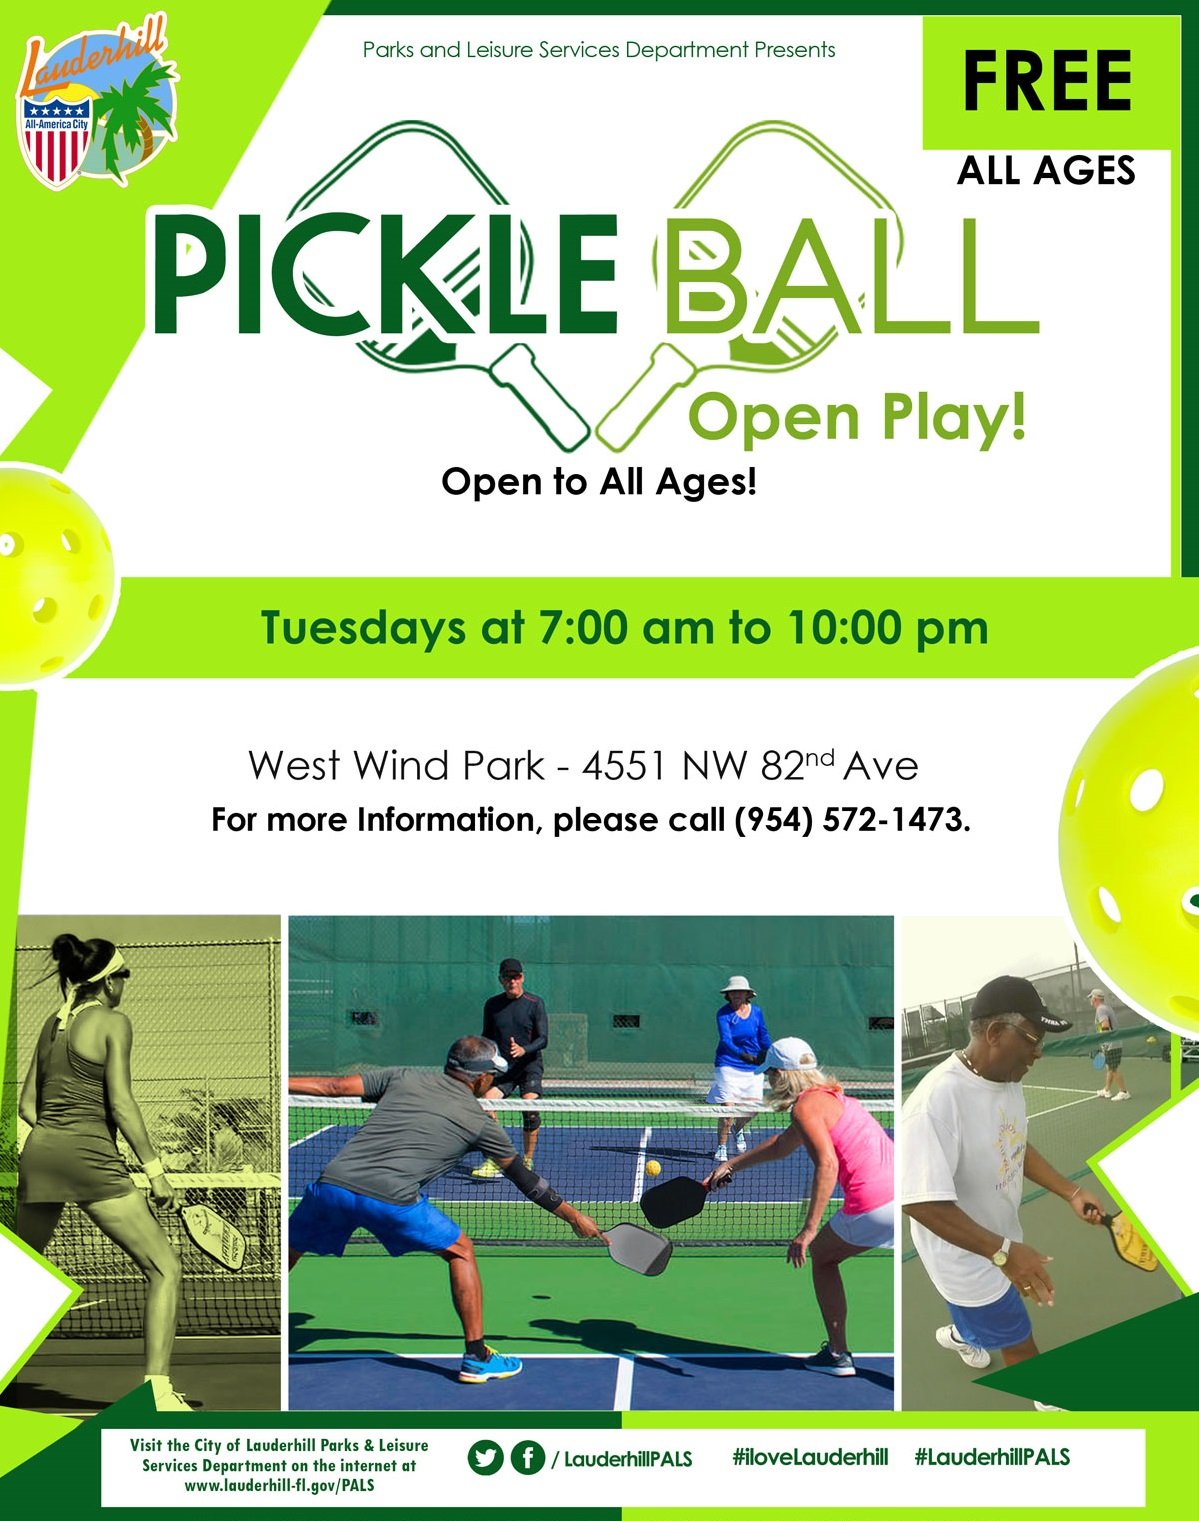 Pickleball Open Play Flyer